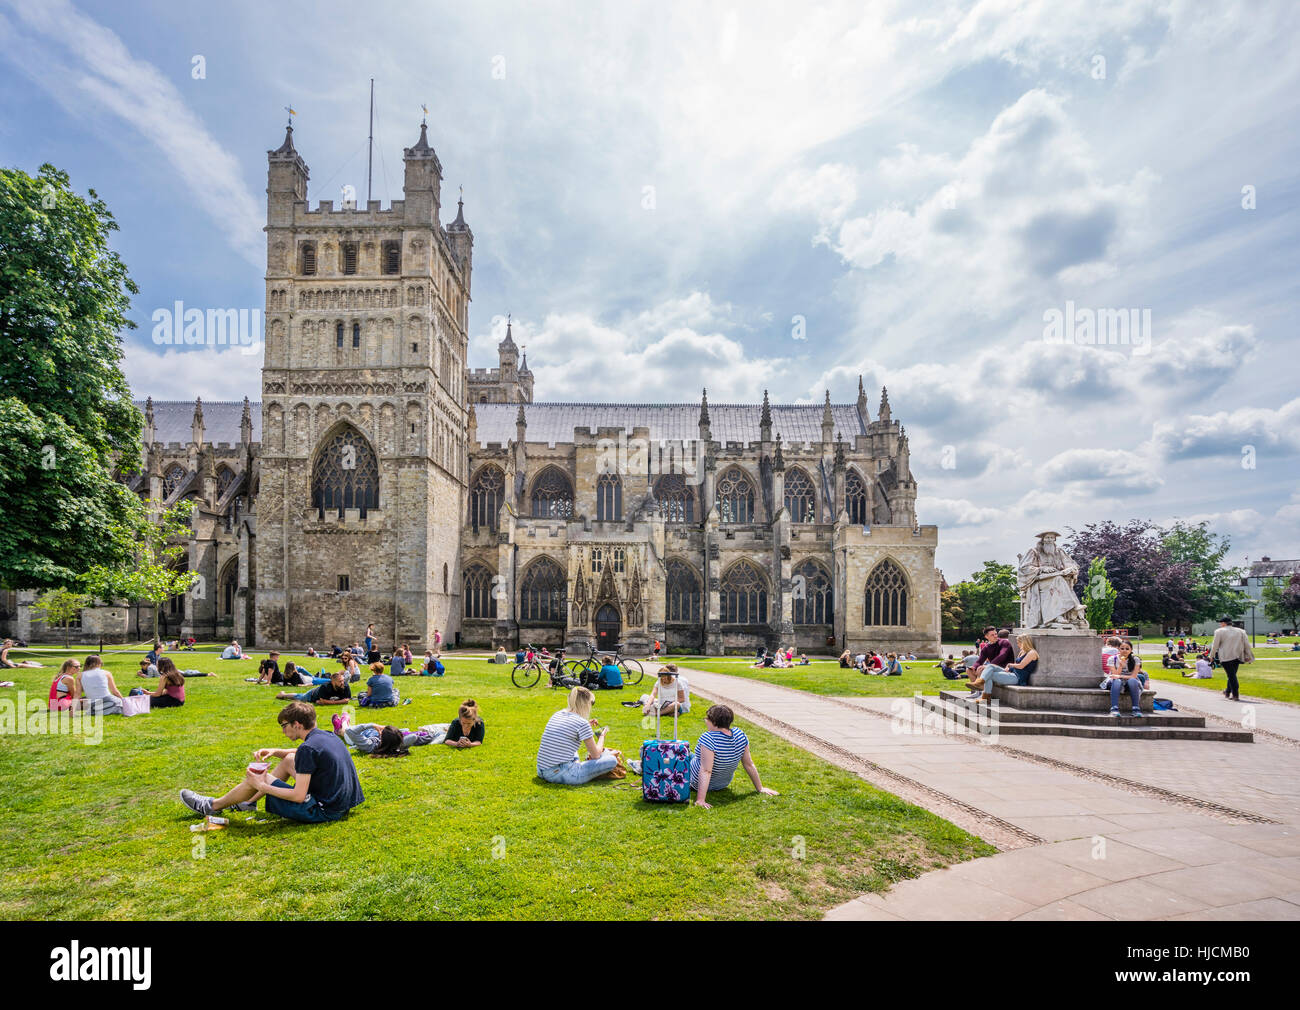 Great Britain, South West England, Devon, Exeter, Exeter Cathedral and the Richard Hooker statue - Stock Image